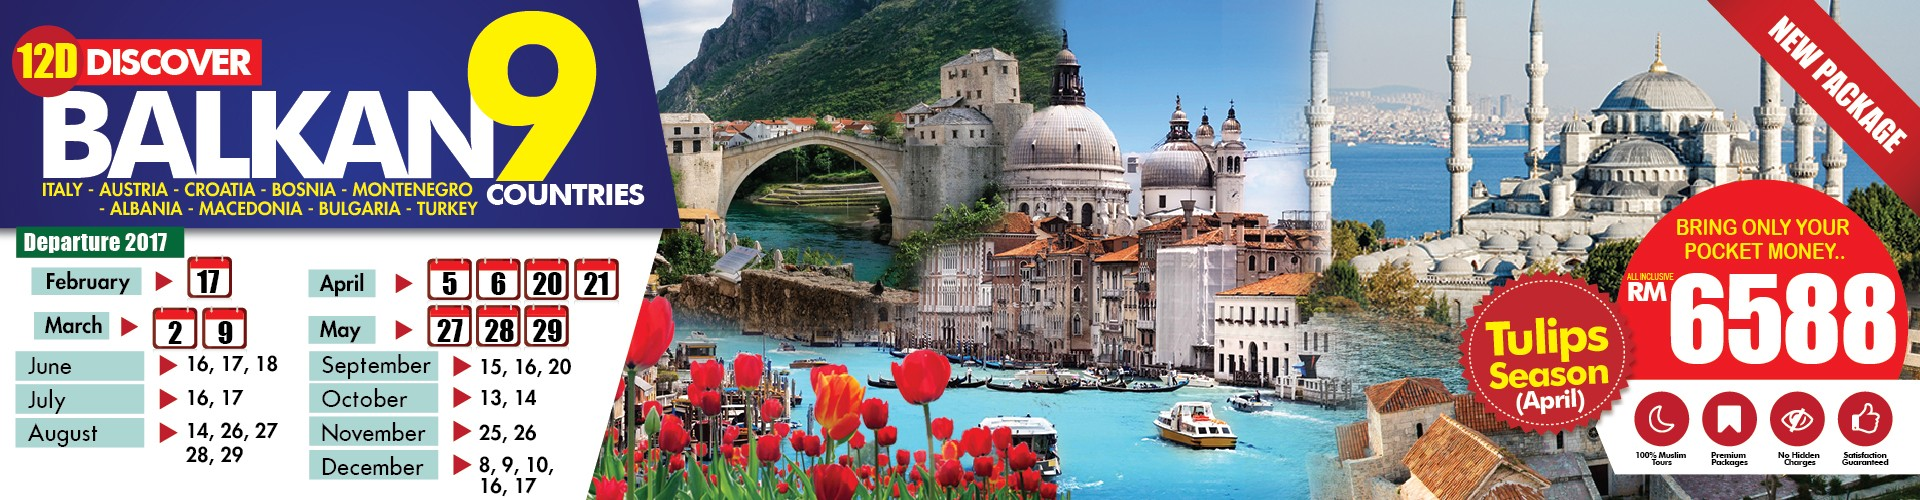 Discover Balkan 9 Countries